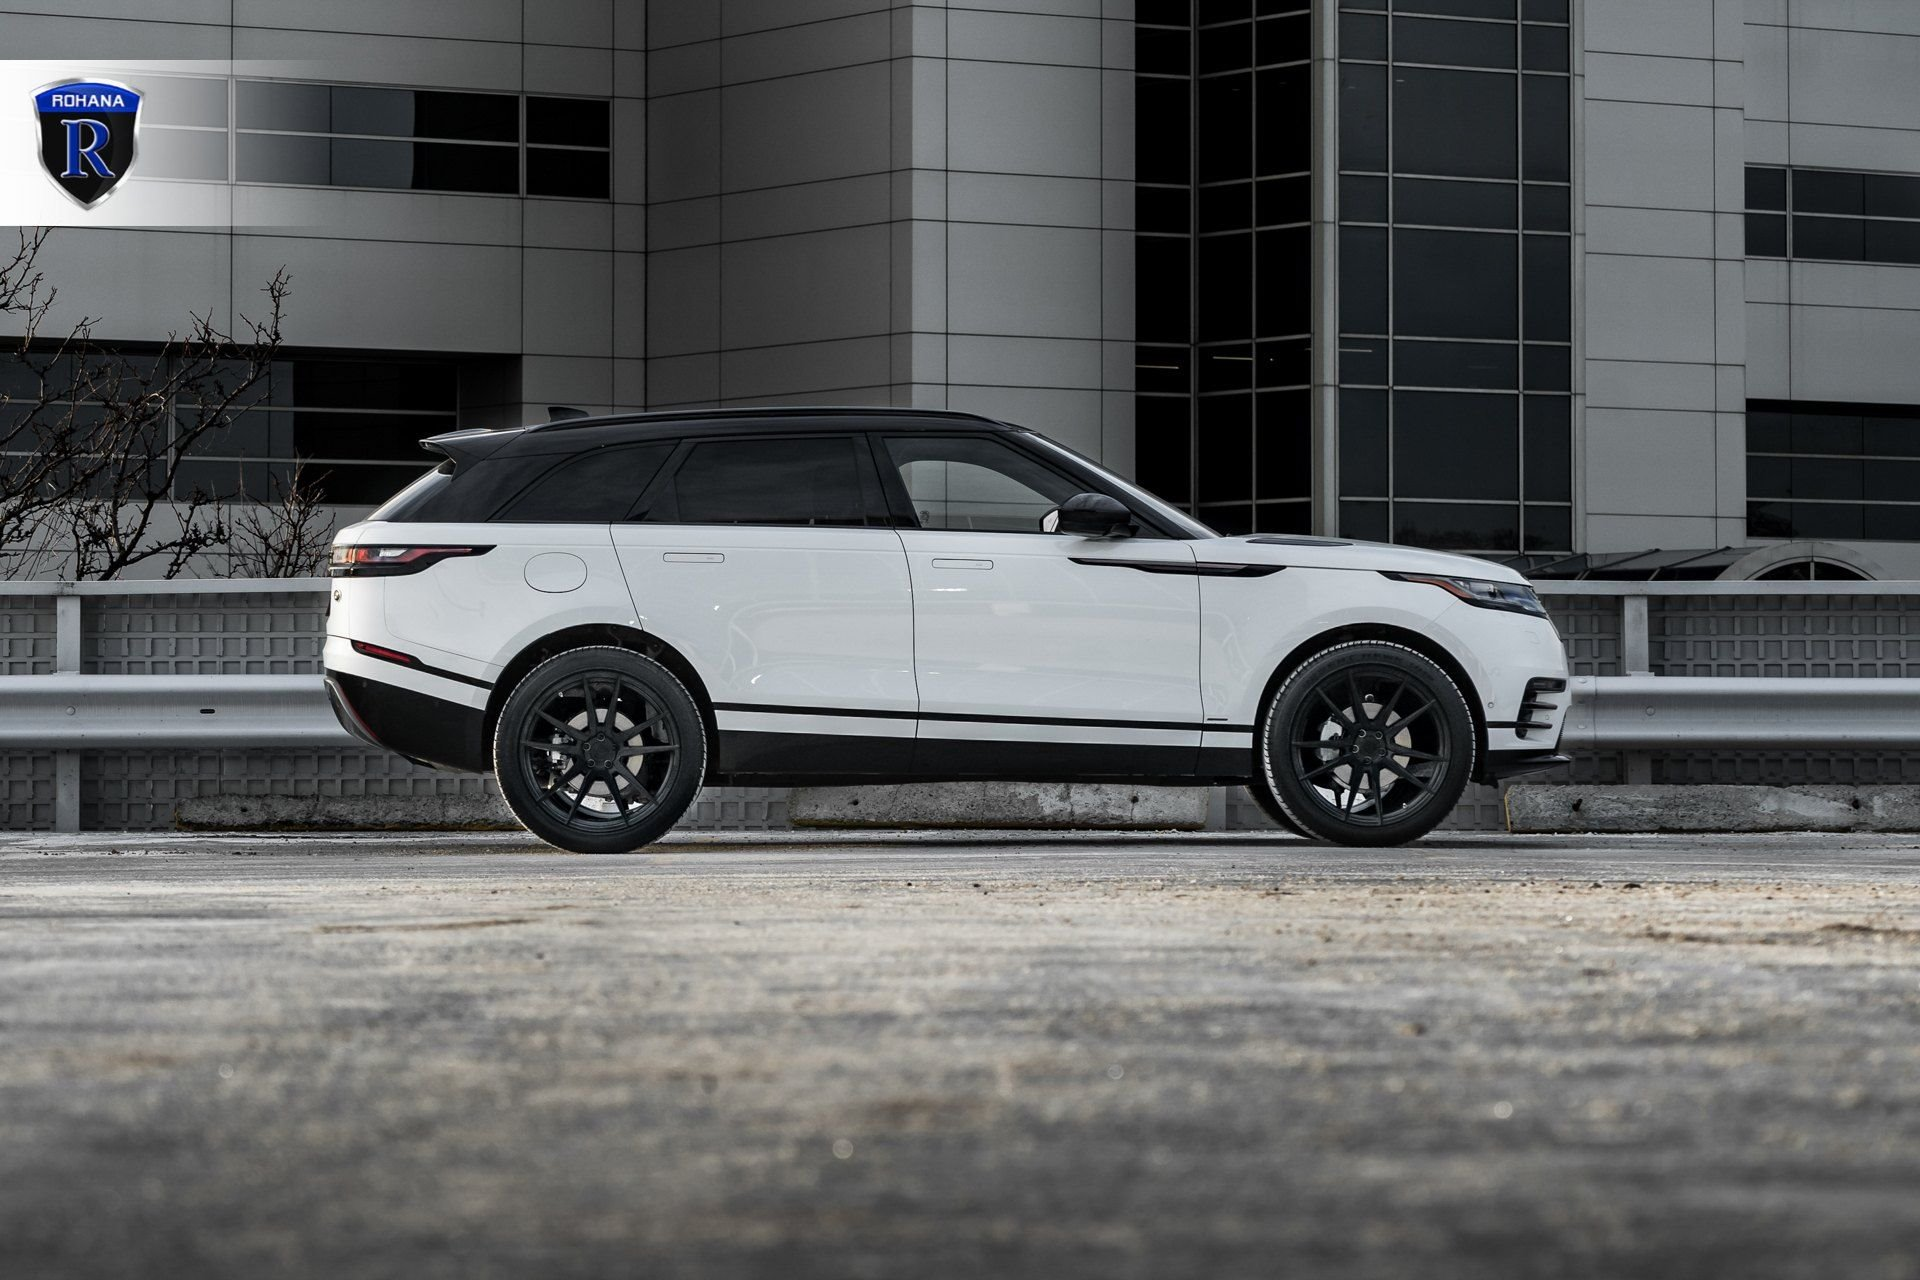 New 2019 Land Rover-Range Rover Velar P250 R-Dynamic SE Range Rover Velar P250 R-Dynamic SE for sale $59,000 at M and V Leasing in Brooklyn NY 11223 1